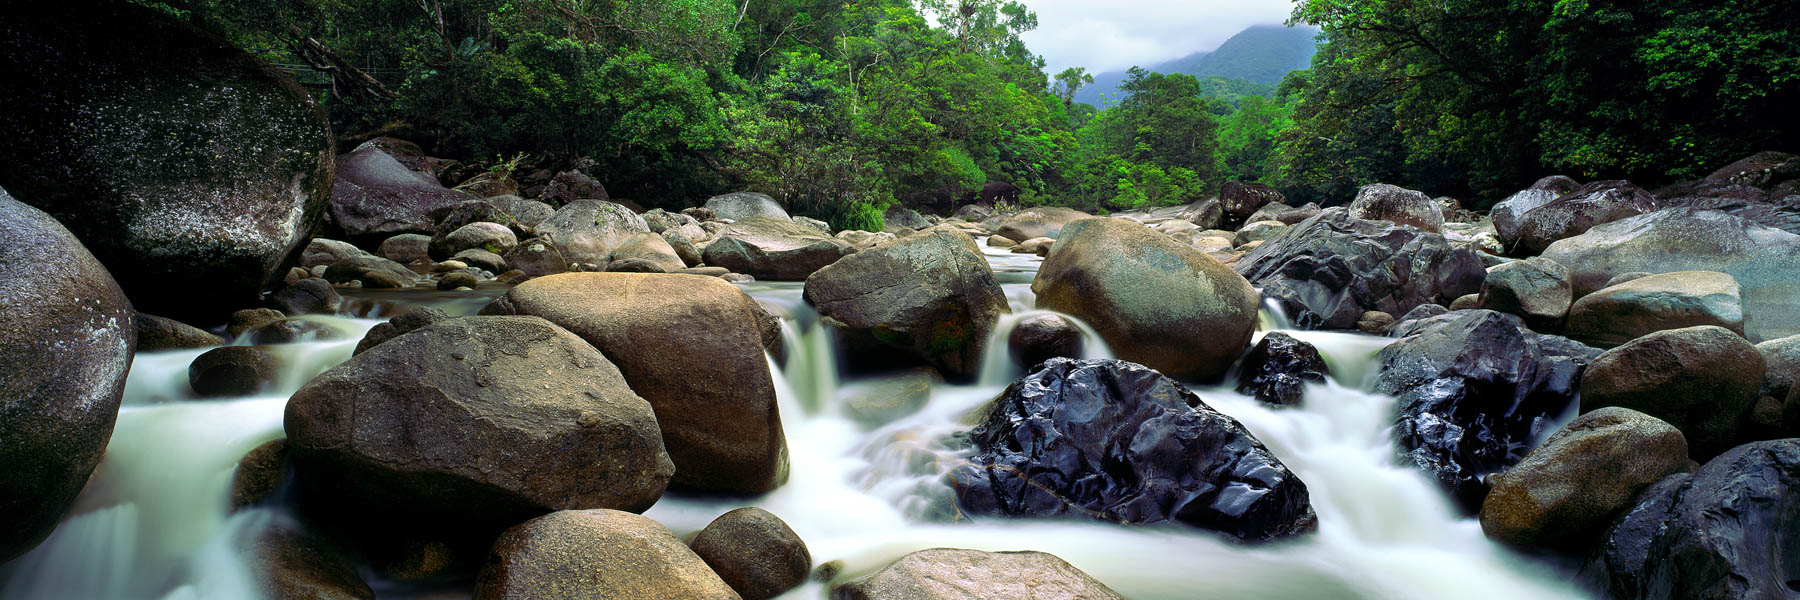 Mossman River flowing over boulders, through the rainforest, Qld, Australia.